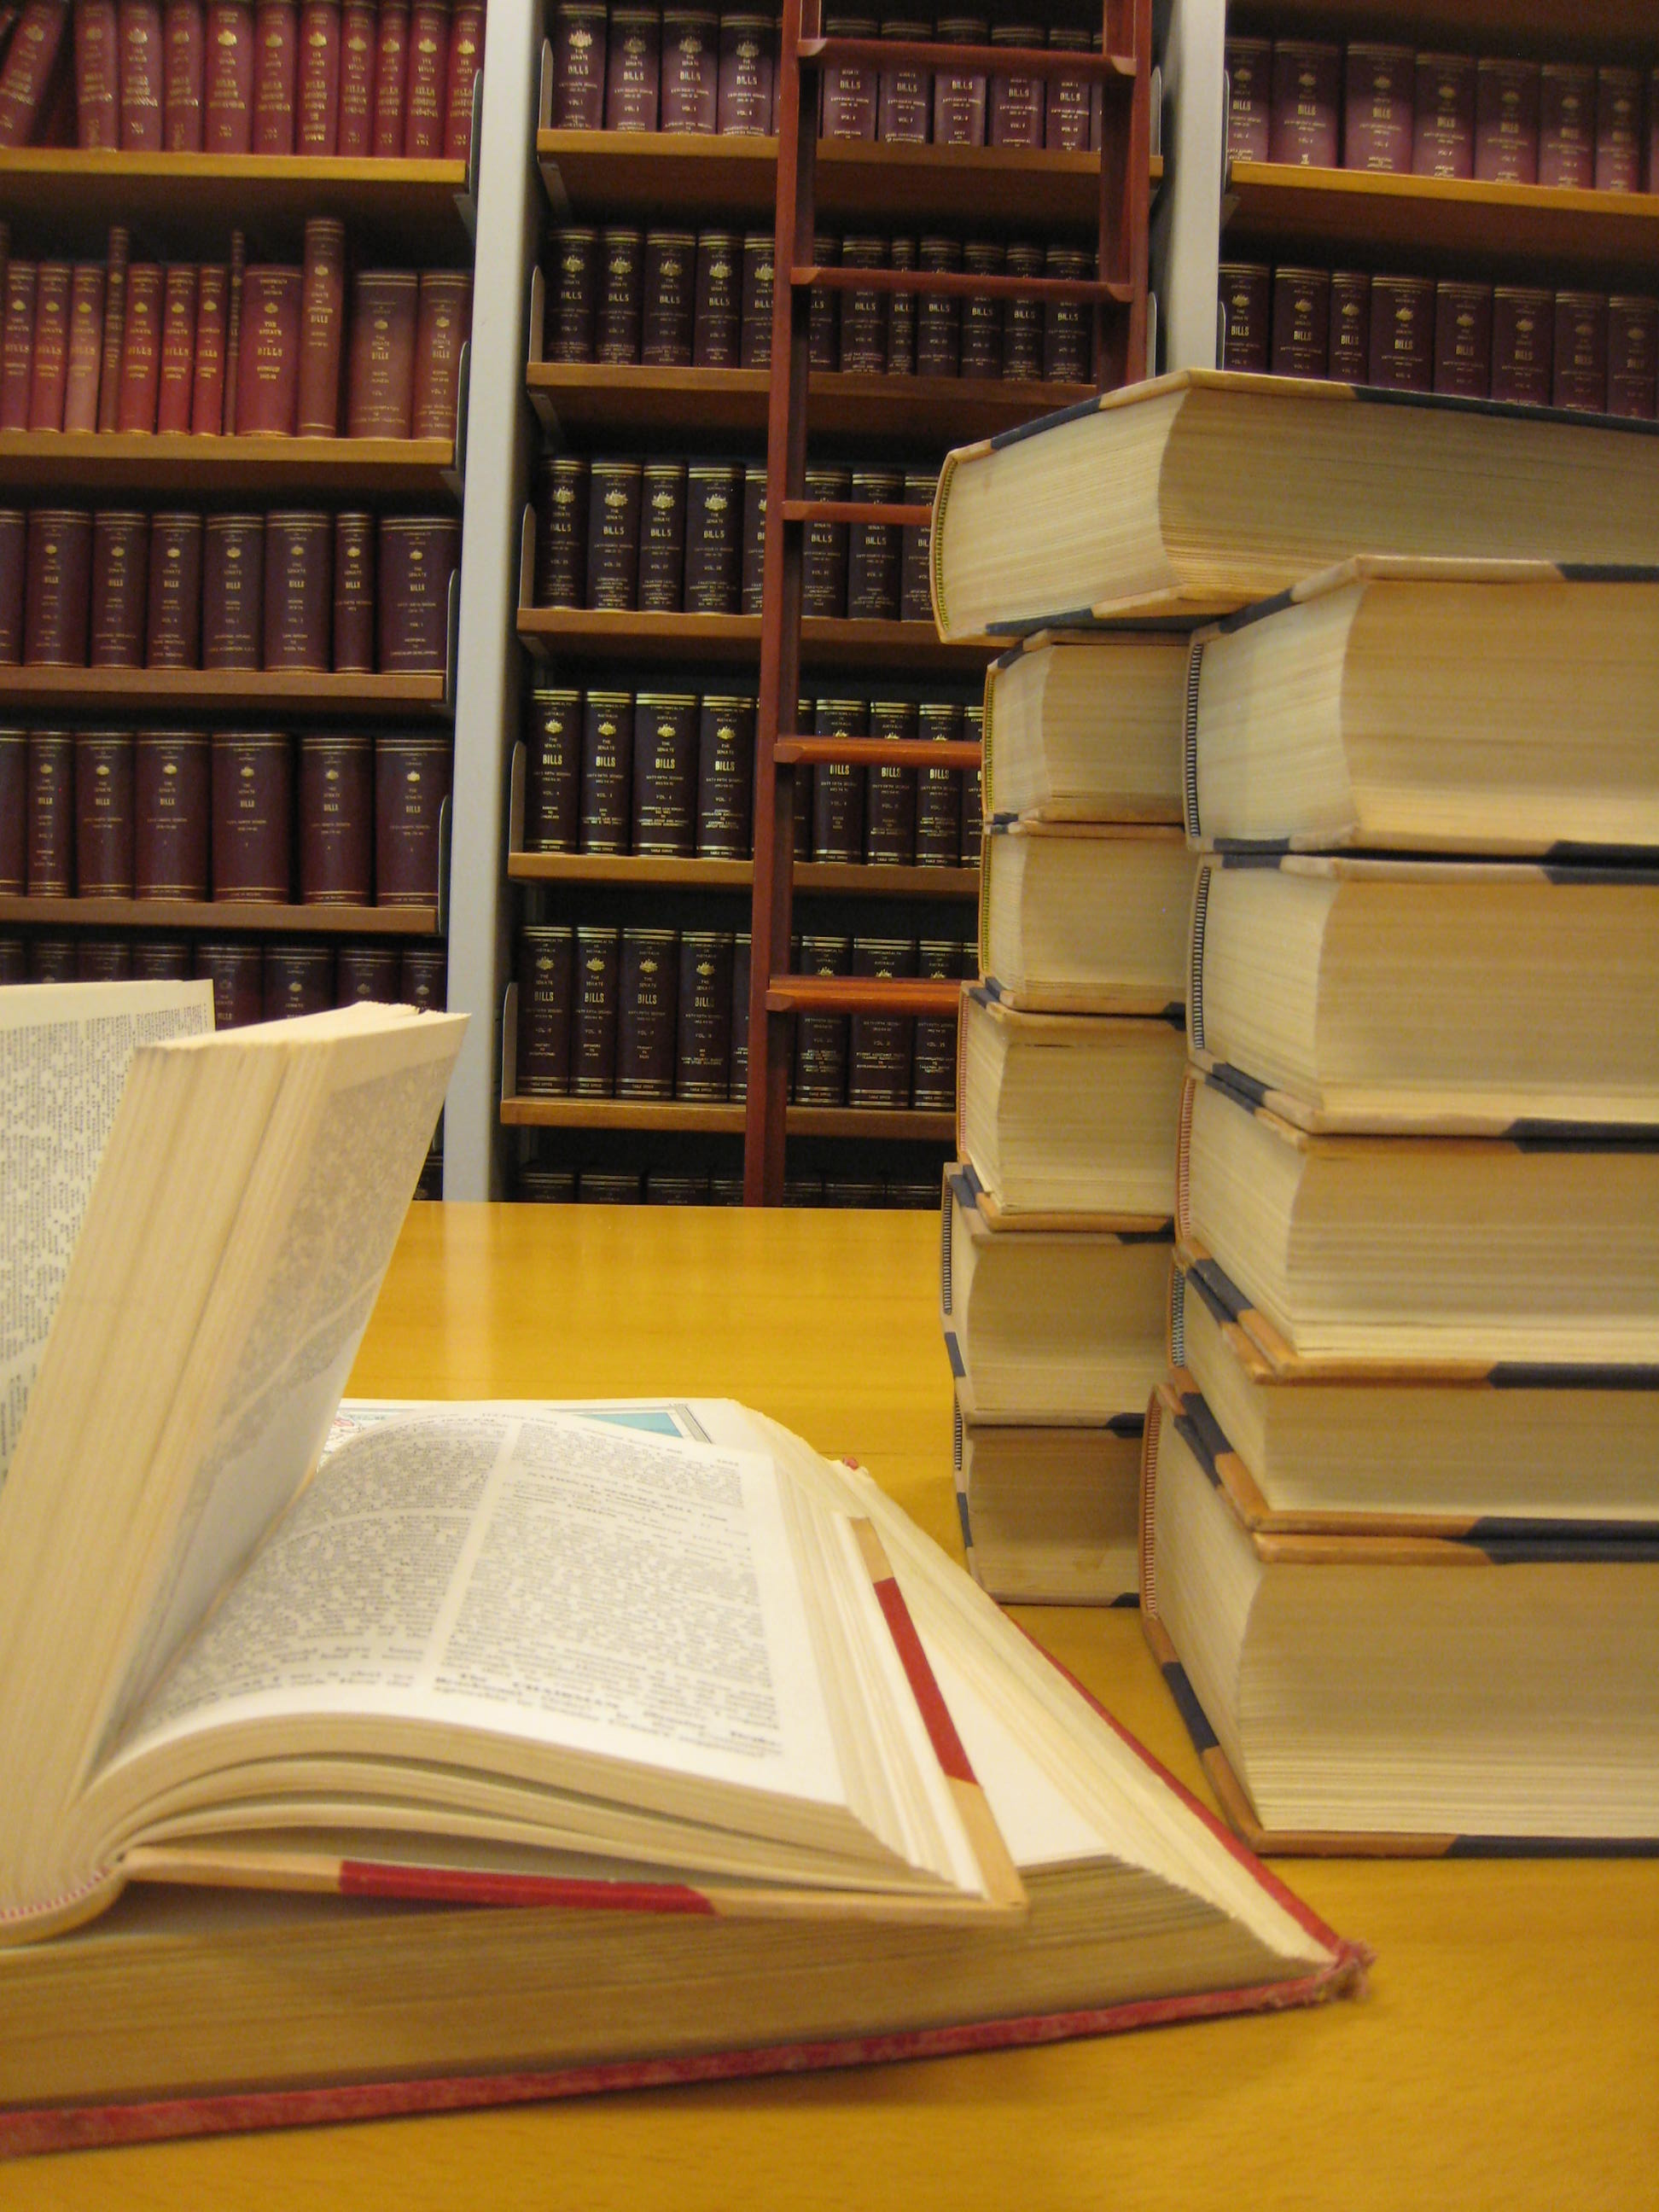 Bound volumes of Hansard and legislation